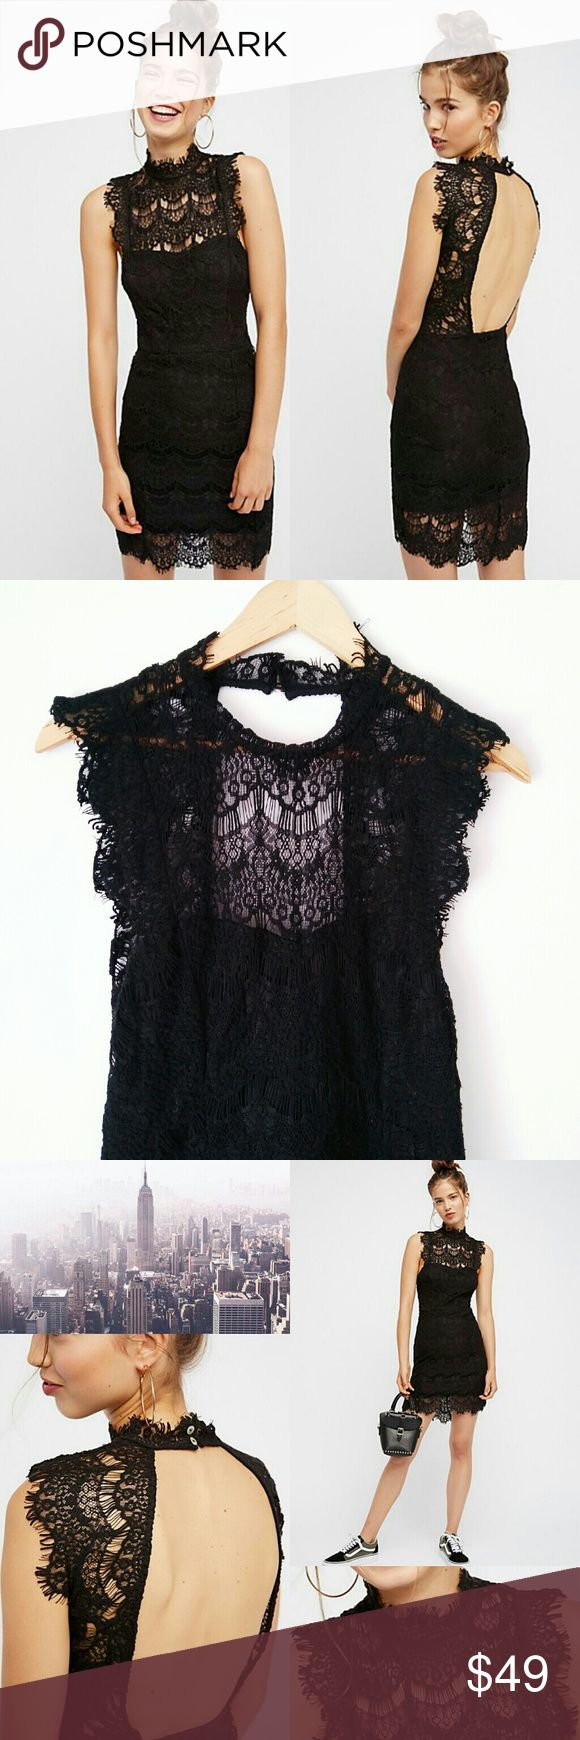 """Free People daydream lace mini dress Free People daydream lace mini dress. Size M  Bodycone lace mini dress with a high neck and scalloped trim. Frayed cap sleeves. Open cutout in back. Partially lined. 60% cotton, 40% nylon  Measurements- Length 34.8"""" 